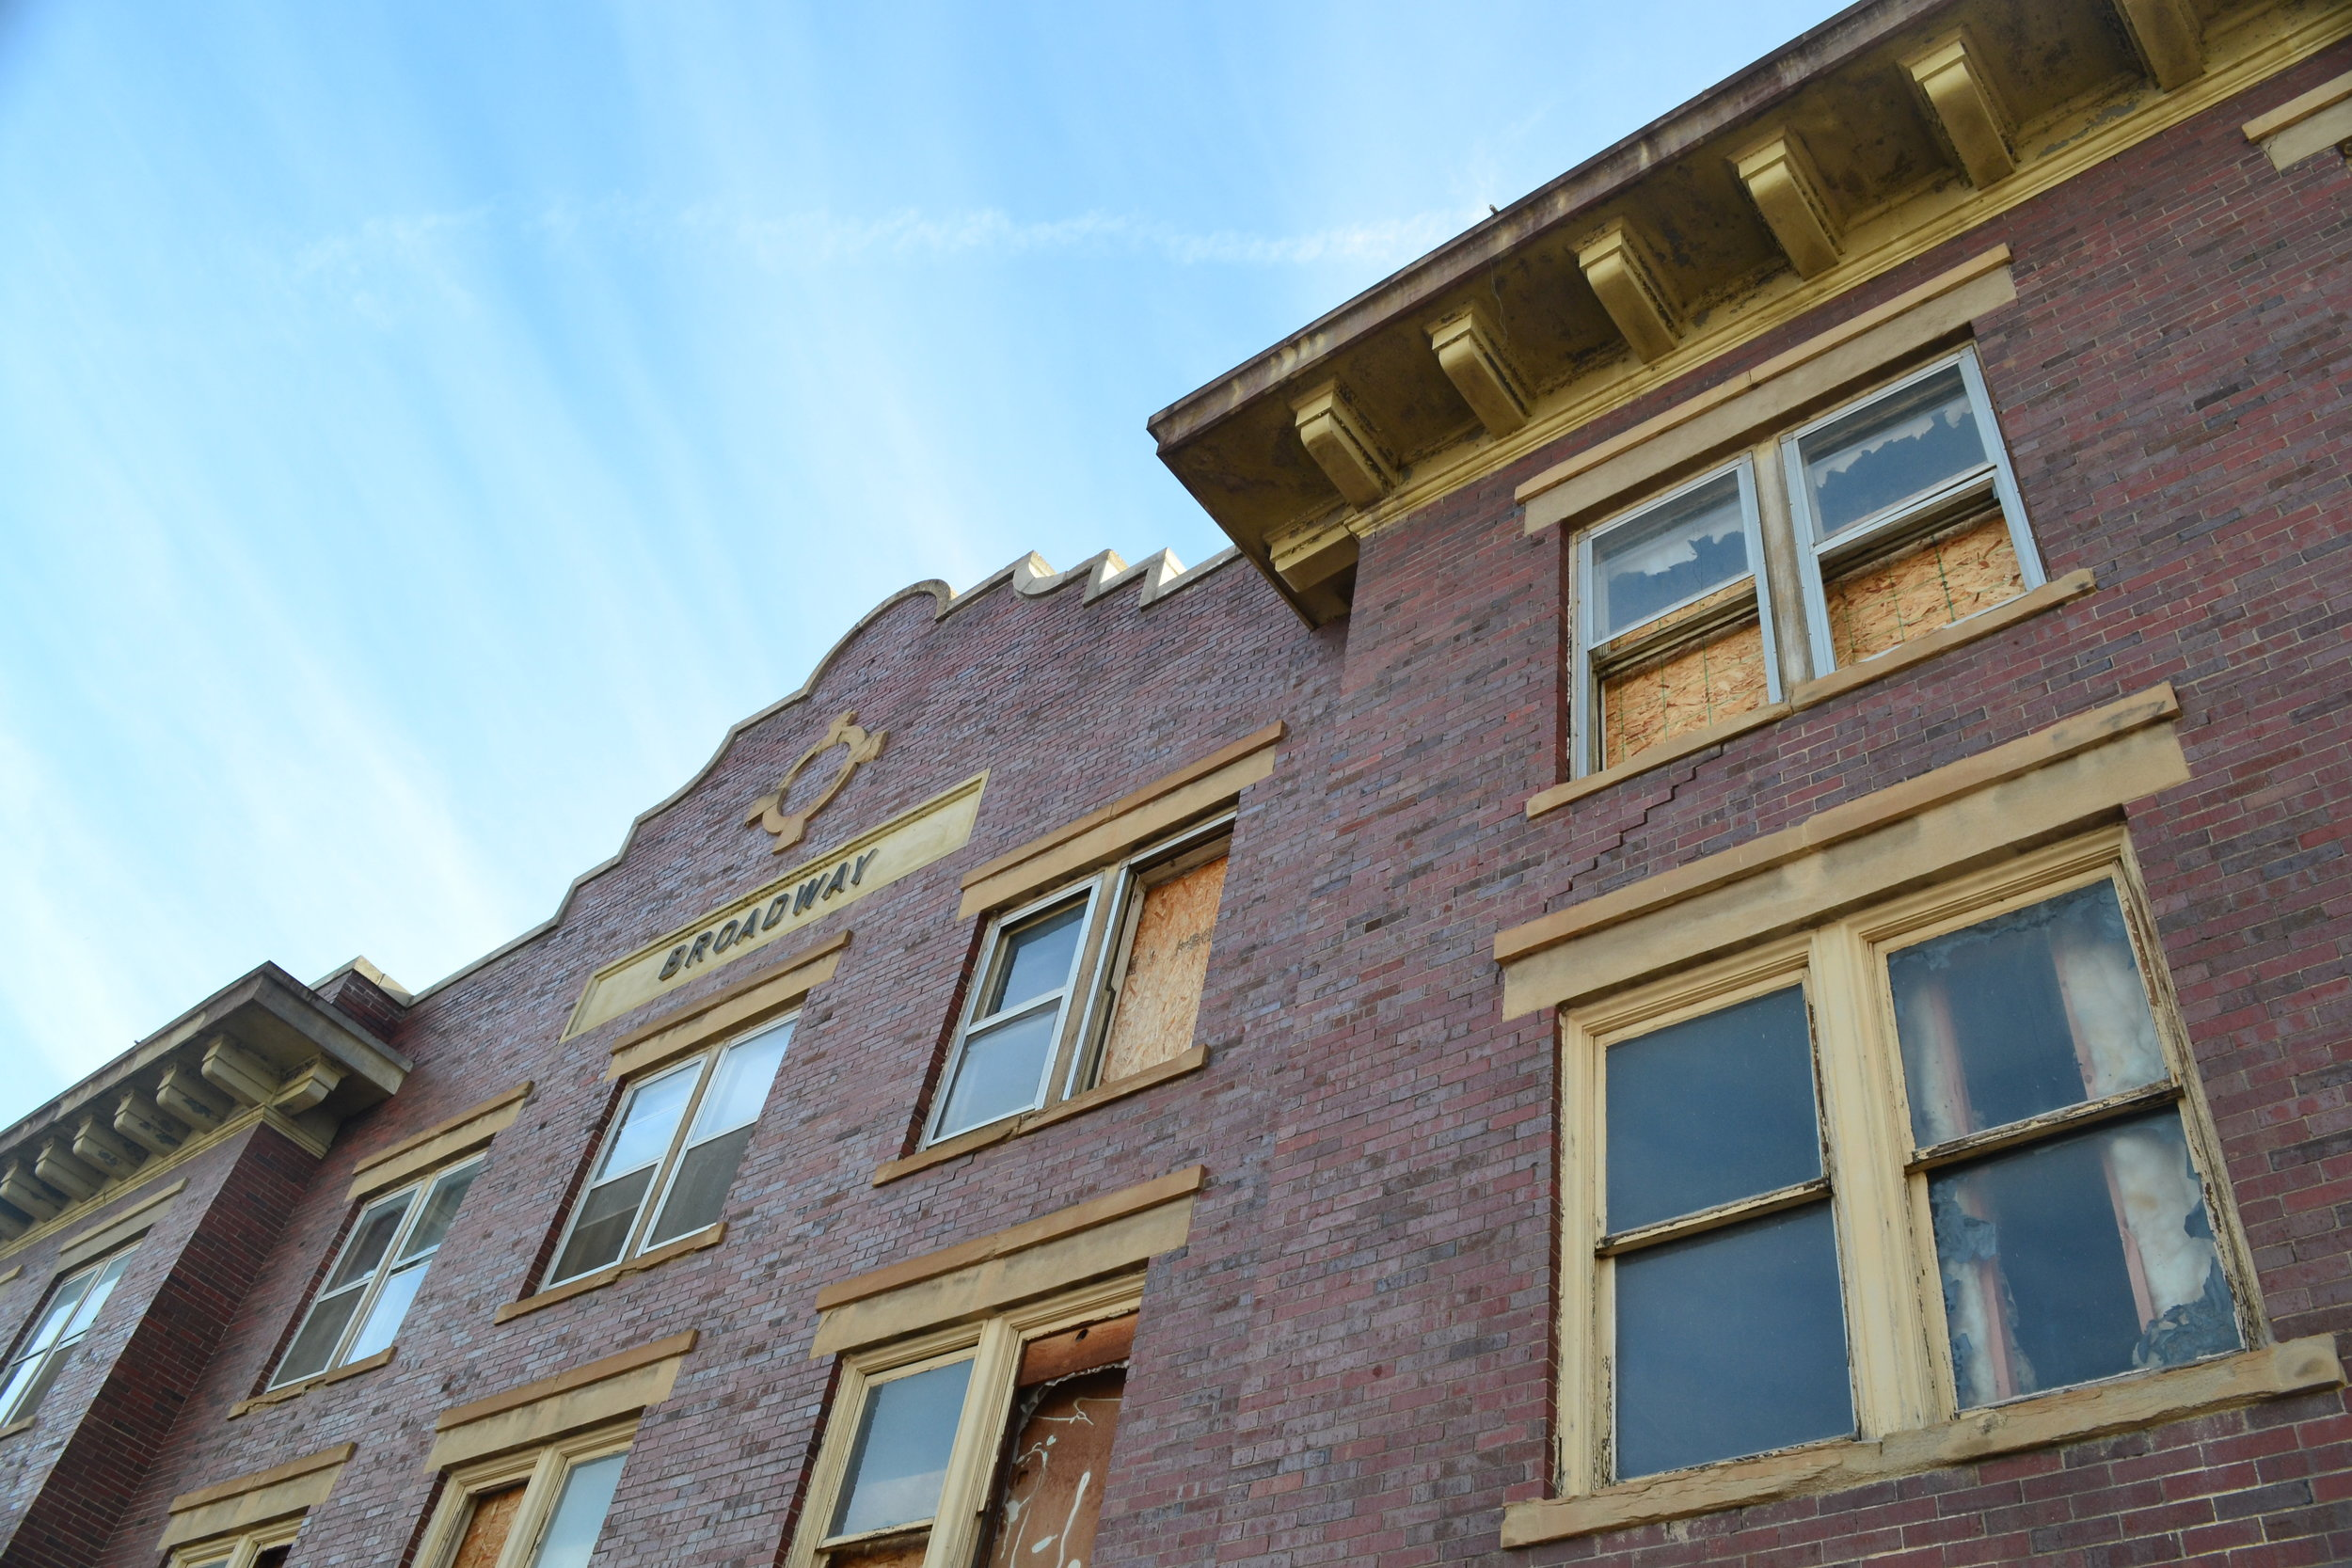 Spring meetings and planning documents for the Broadway Apartments will go far in charting a solid and sustainable course for this Lewistown landmark.